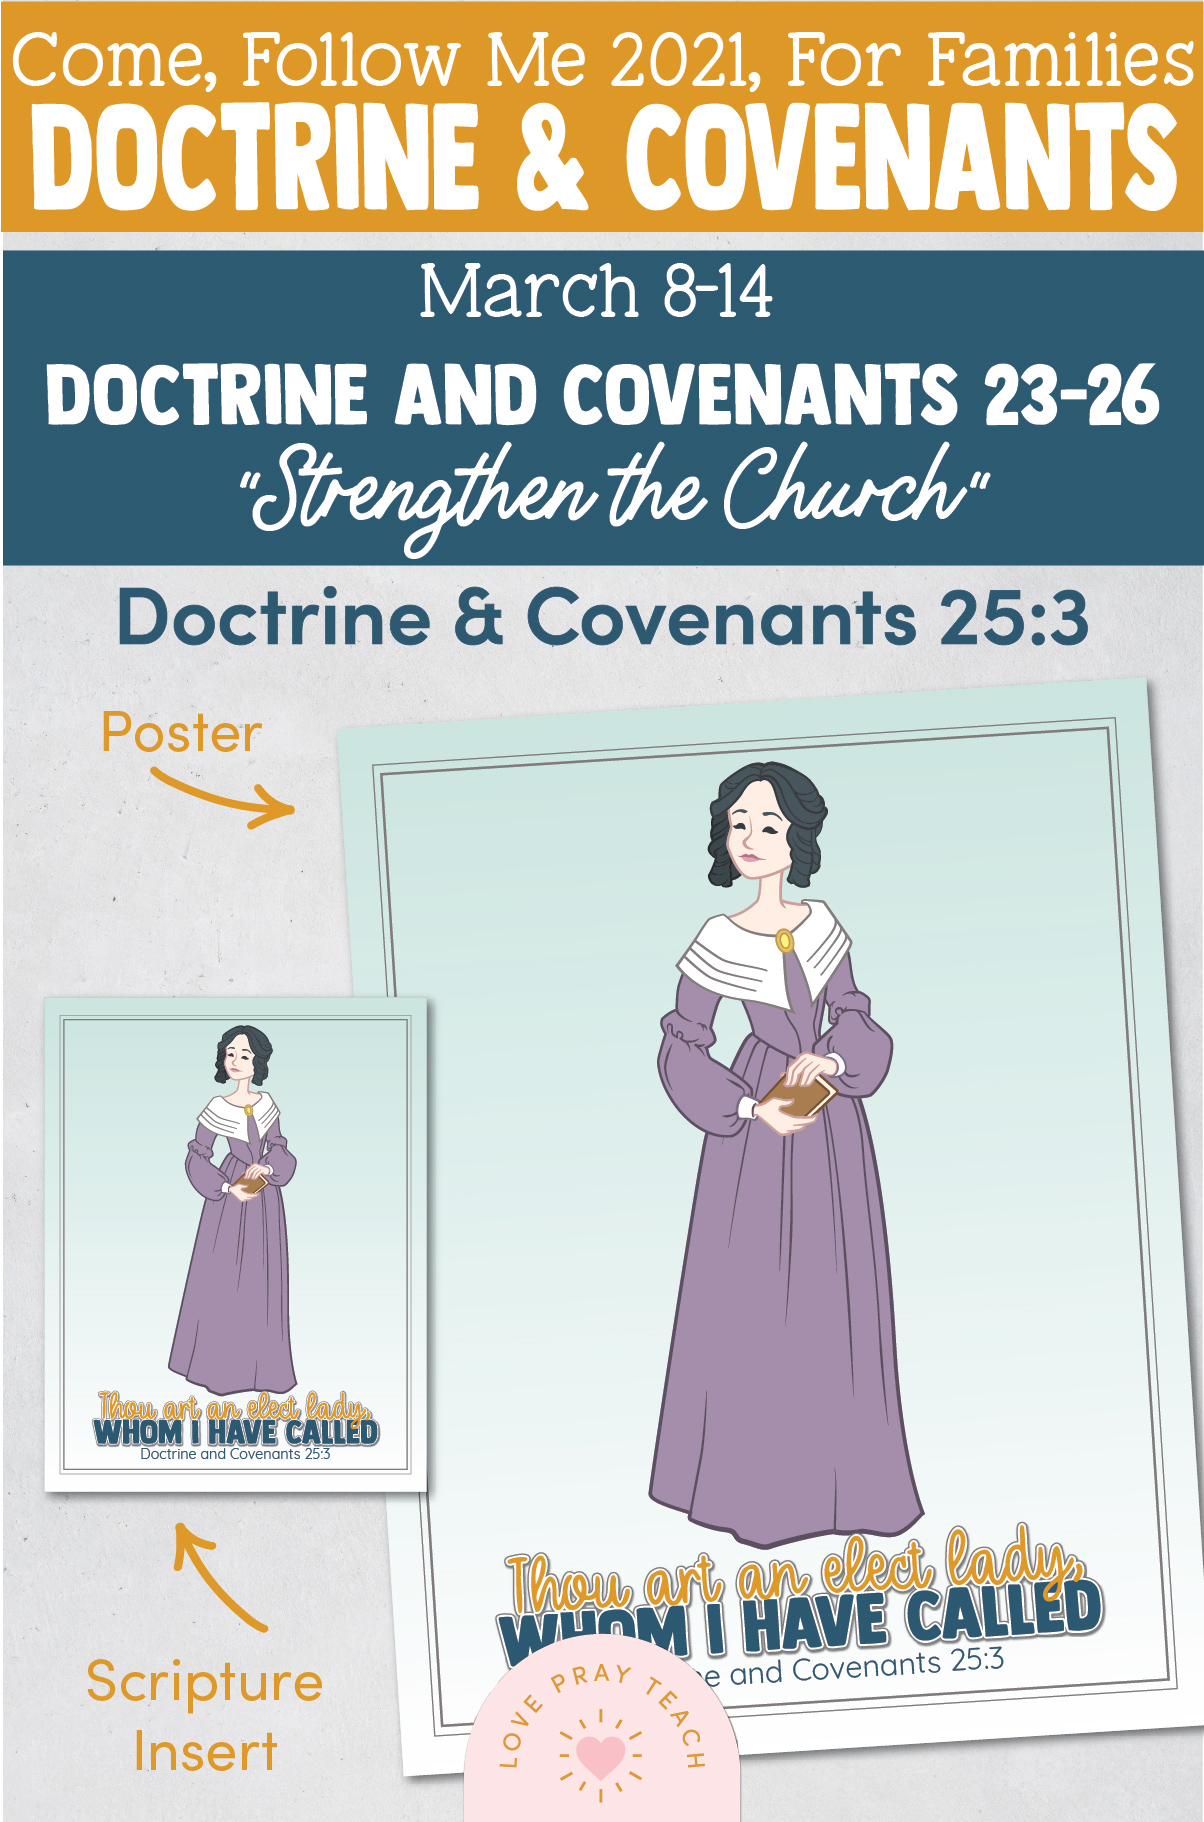 """Come, Follow Me—For Individuals and Families: Doctrine And Covenants 2021, March Week 2:March 8-14, Doctrine and Covenants 23–26, """"Strengthen the Church"""""""